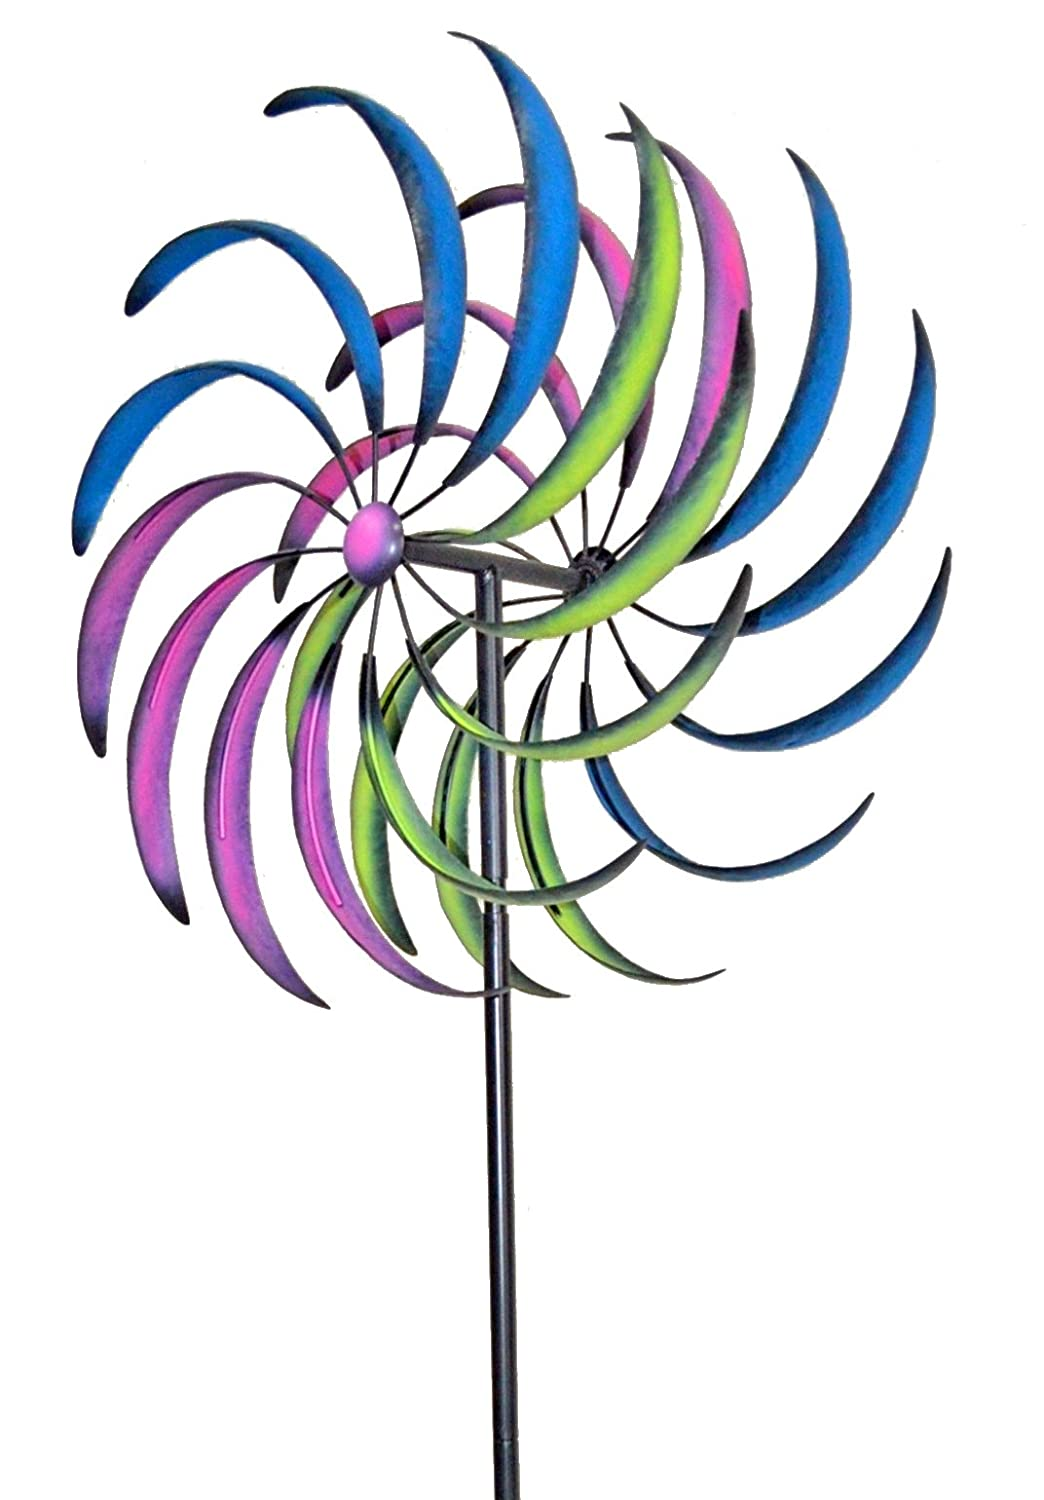 Garden accessory Decoration Jardinion Windmill made of metal Bird protection Shooters Scarecrows Reflections Multicolore ST